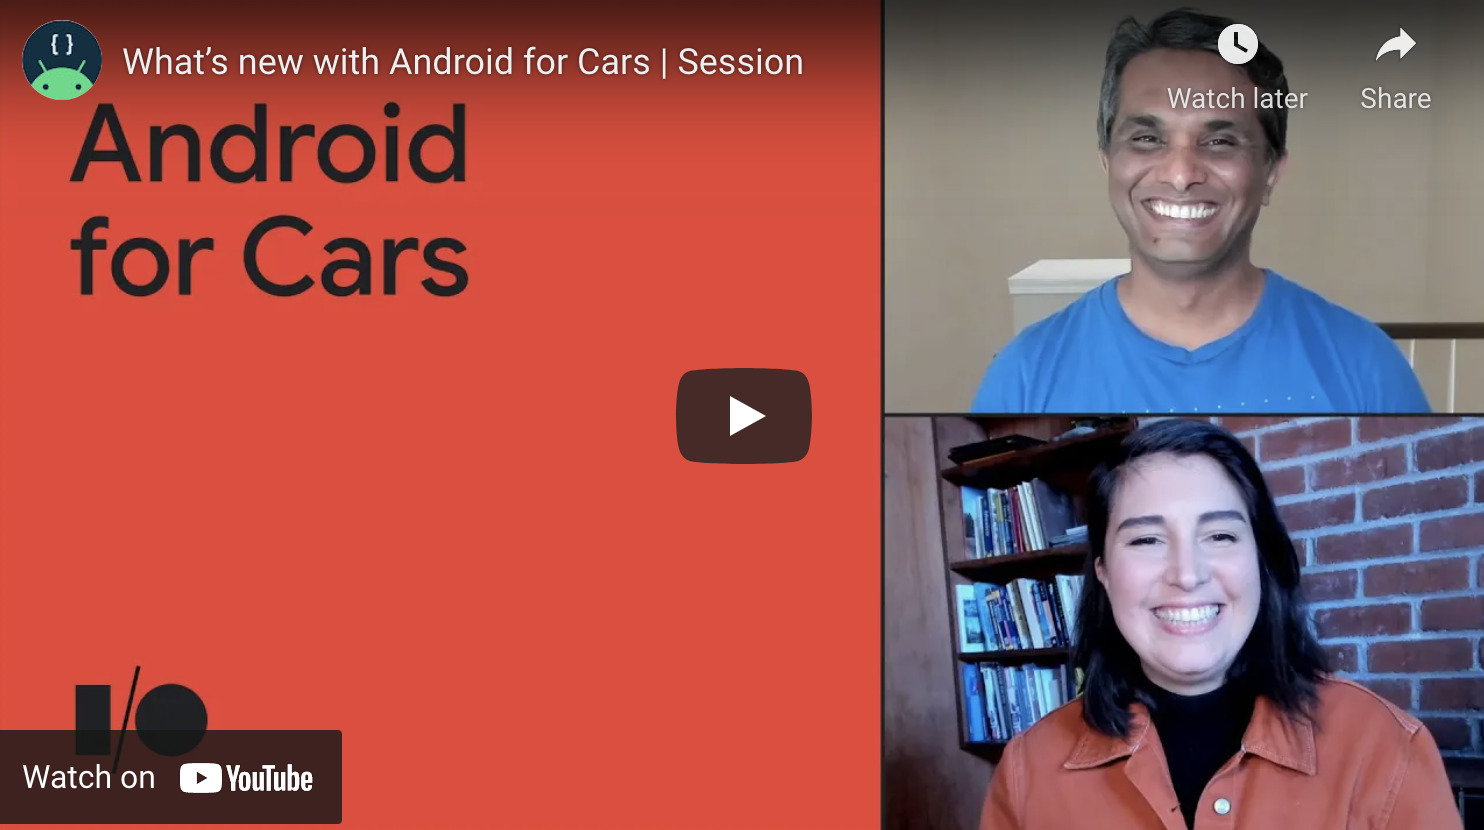 What's new with Android for Cars